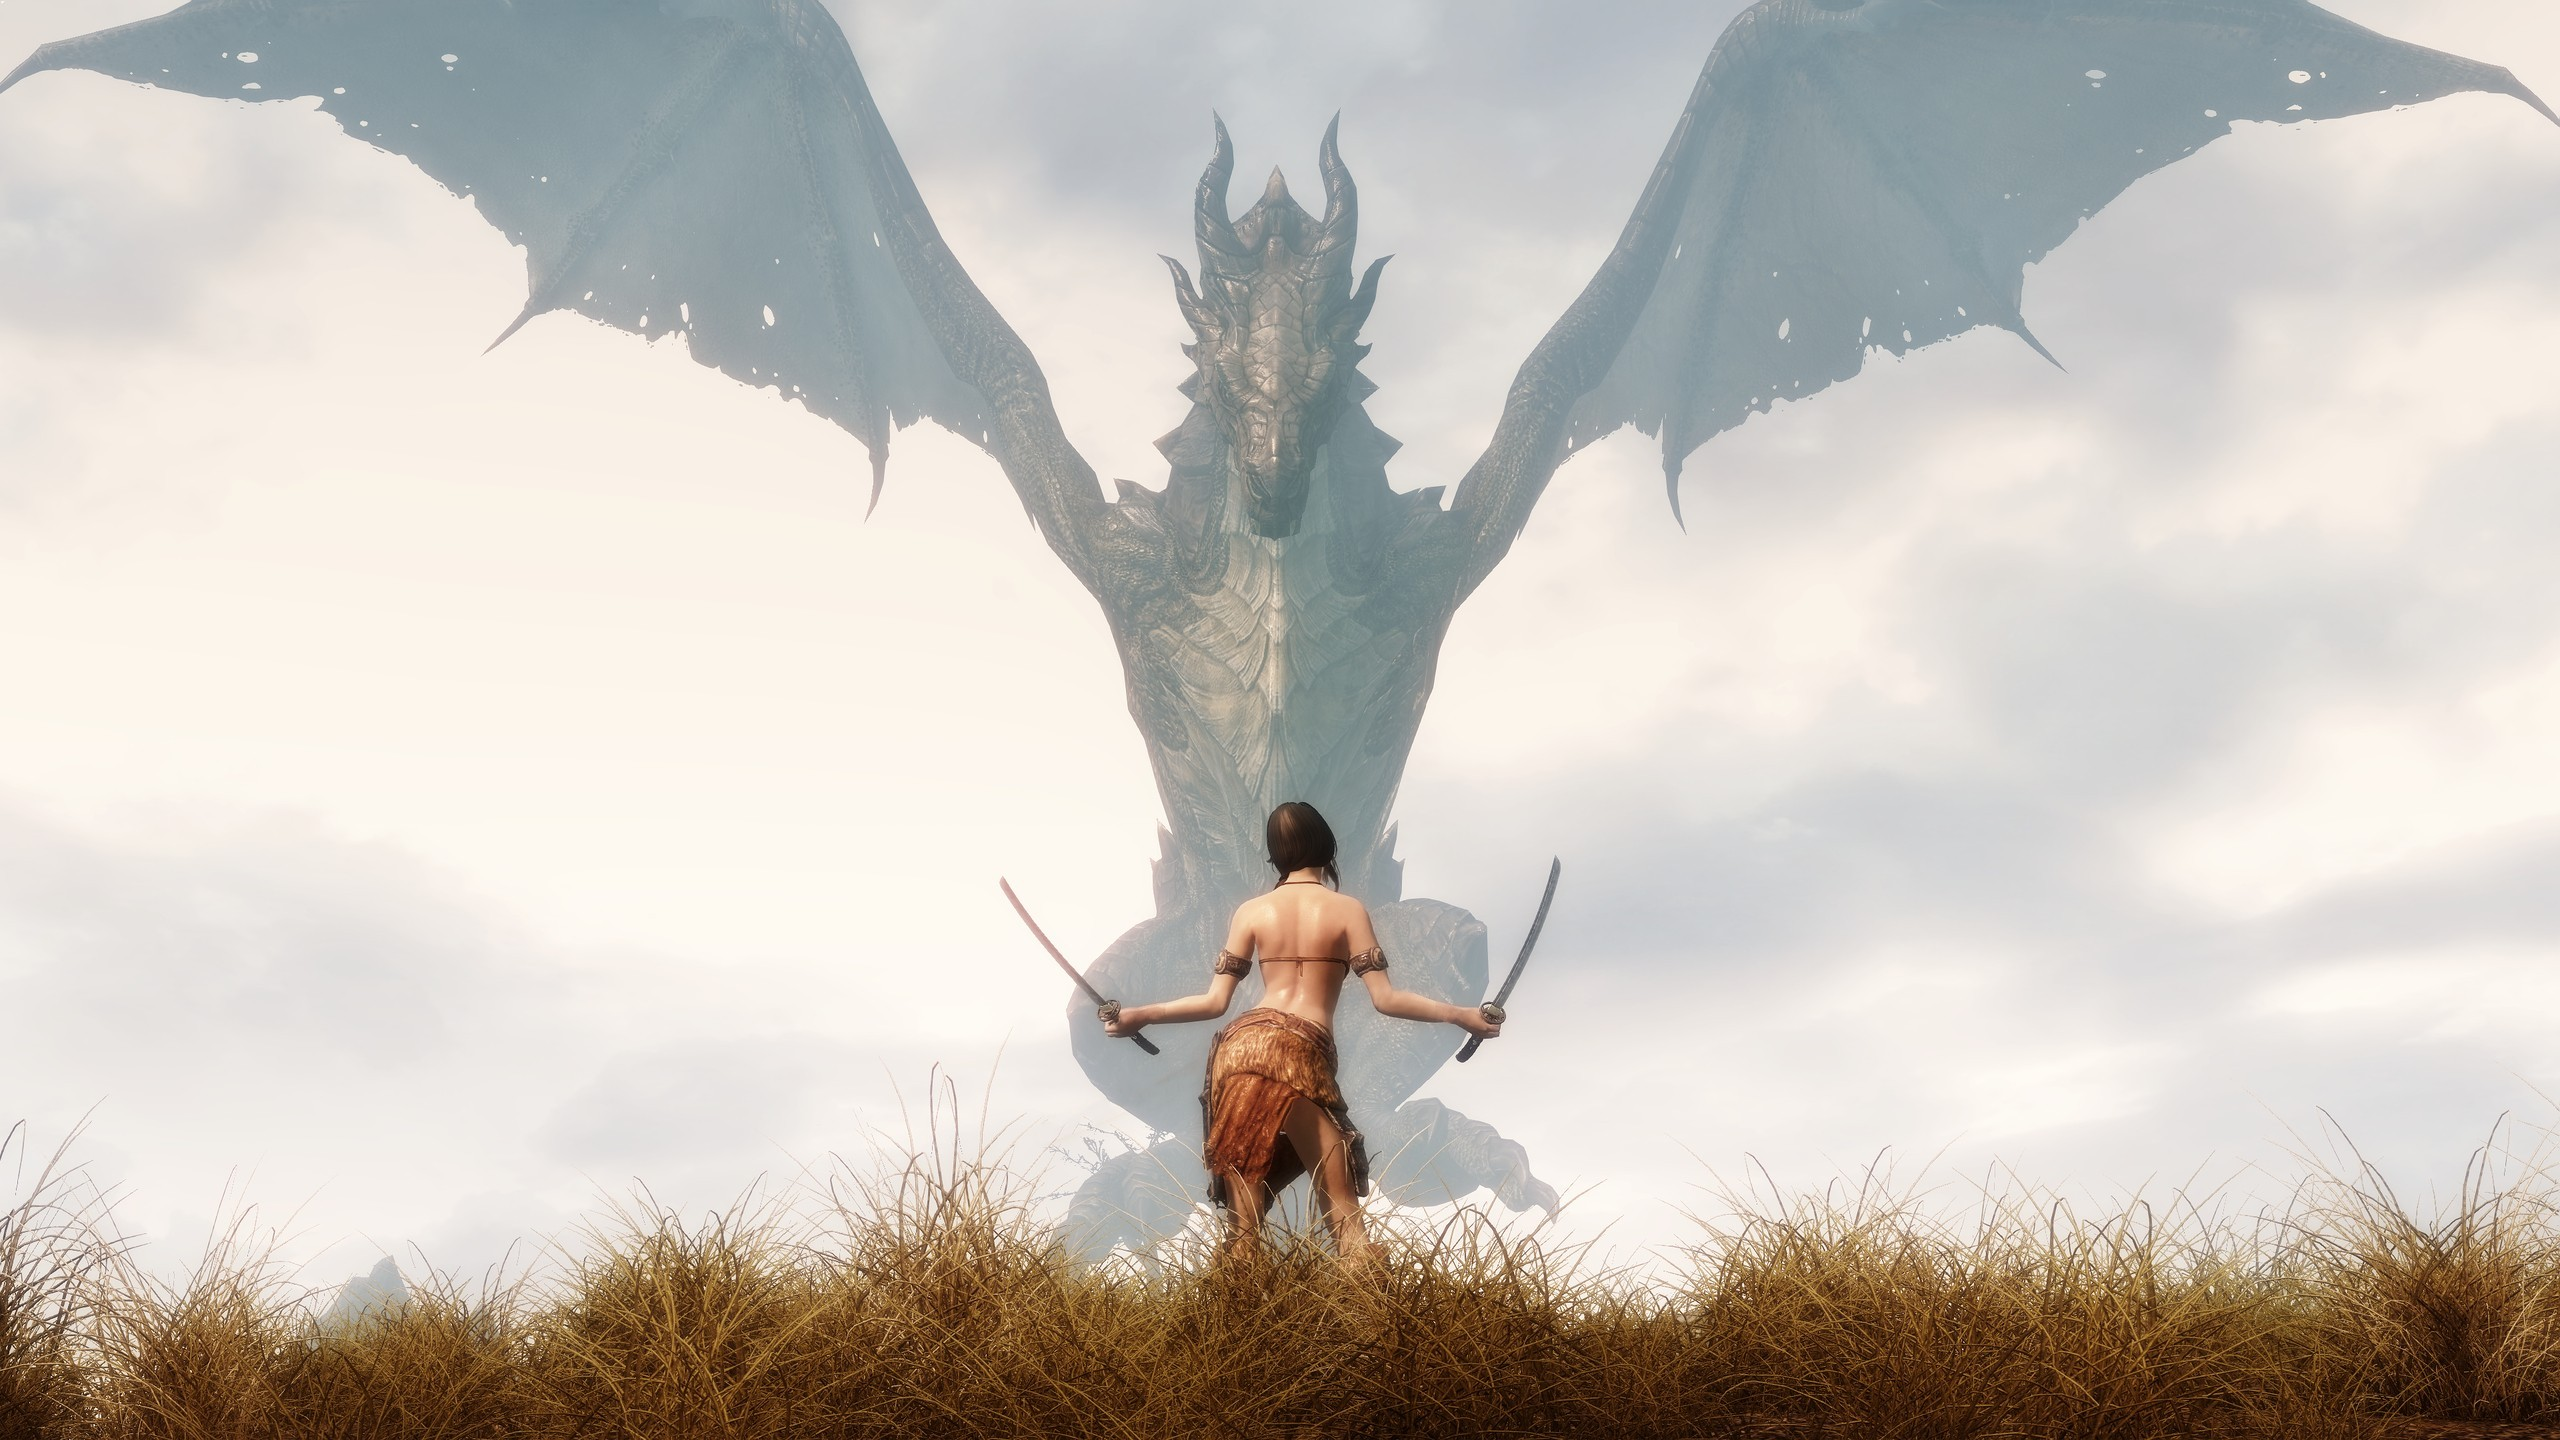 Wallpaper The Elder Scrolls V: Skyrim girl and dragon